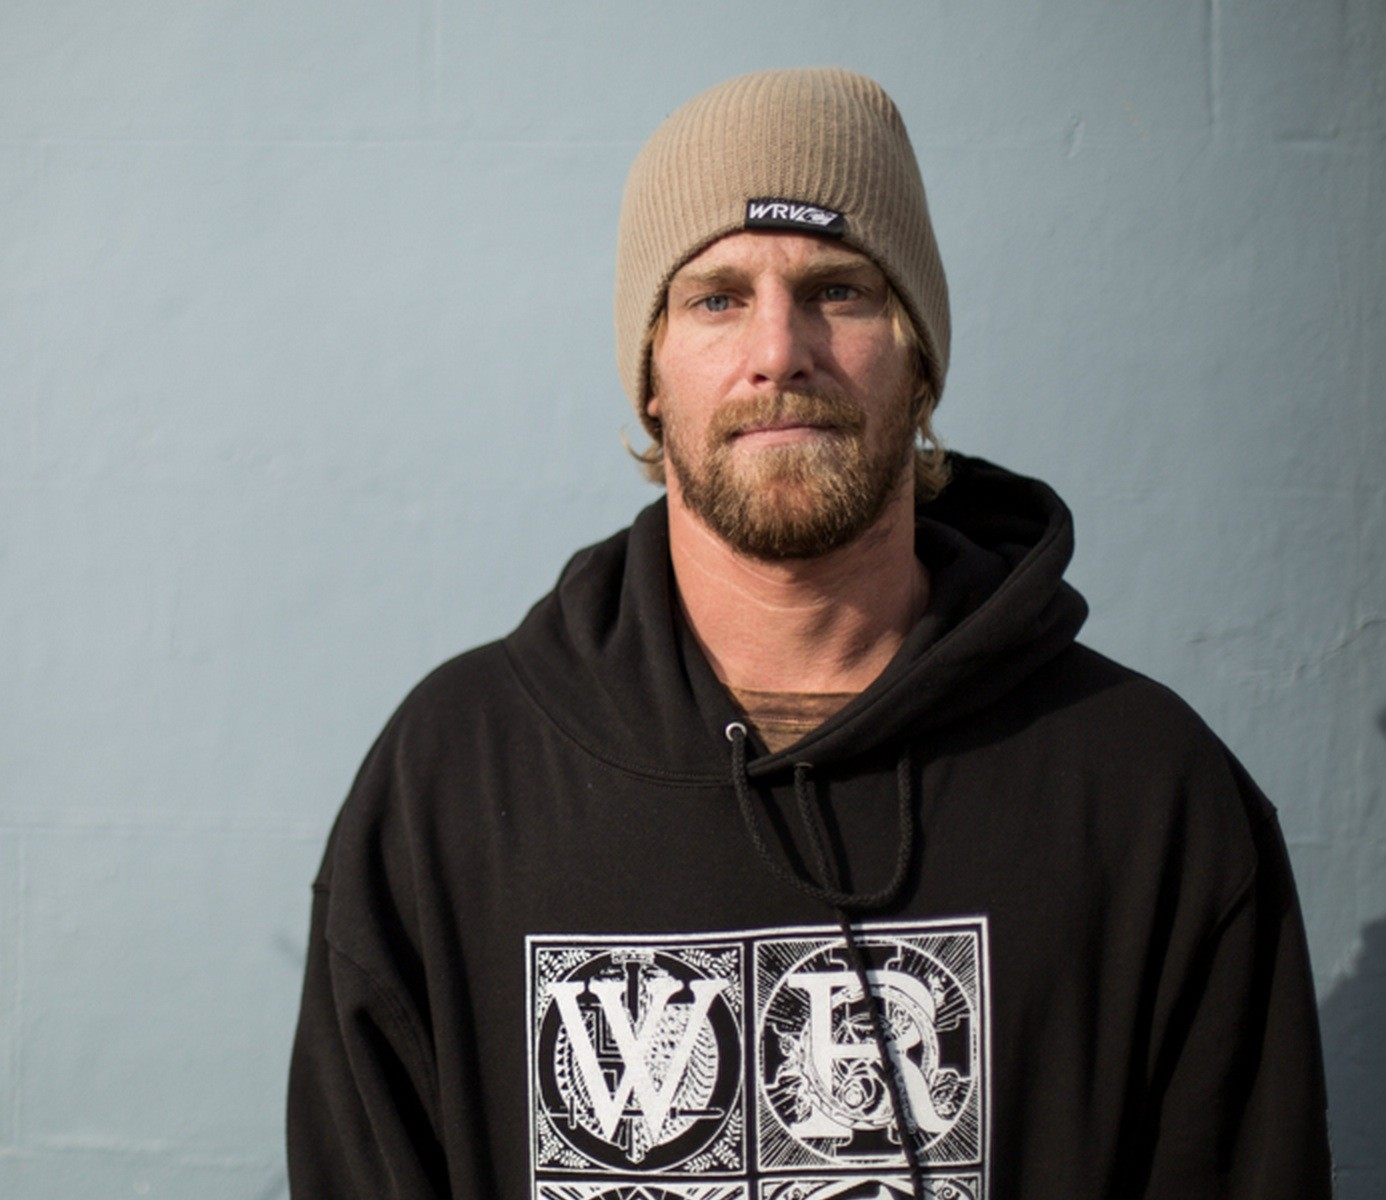 skudin was named Eastern Surf Magazine's 2013 Surfer of the Year, and he continues to climb the professional ranks.